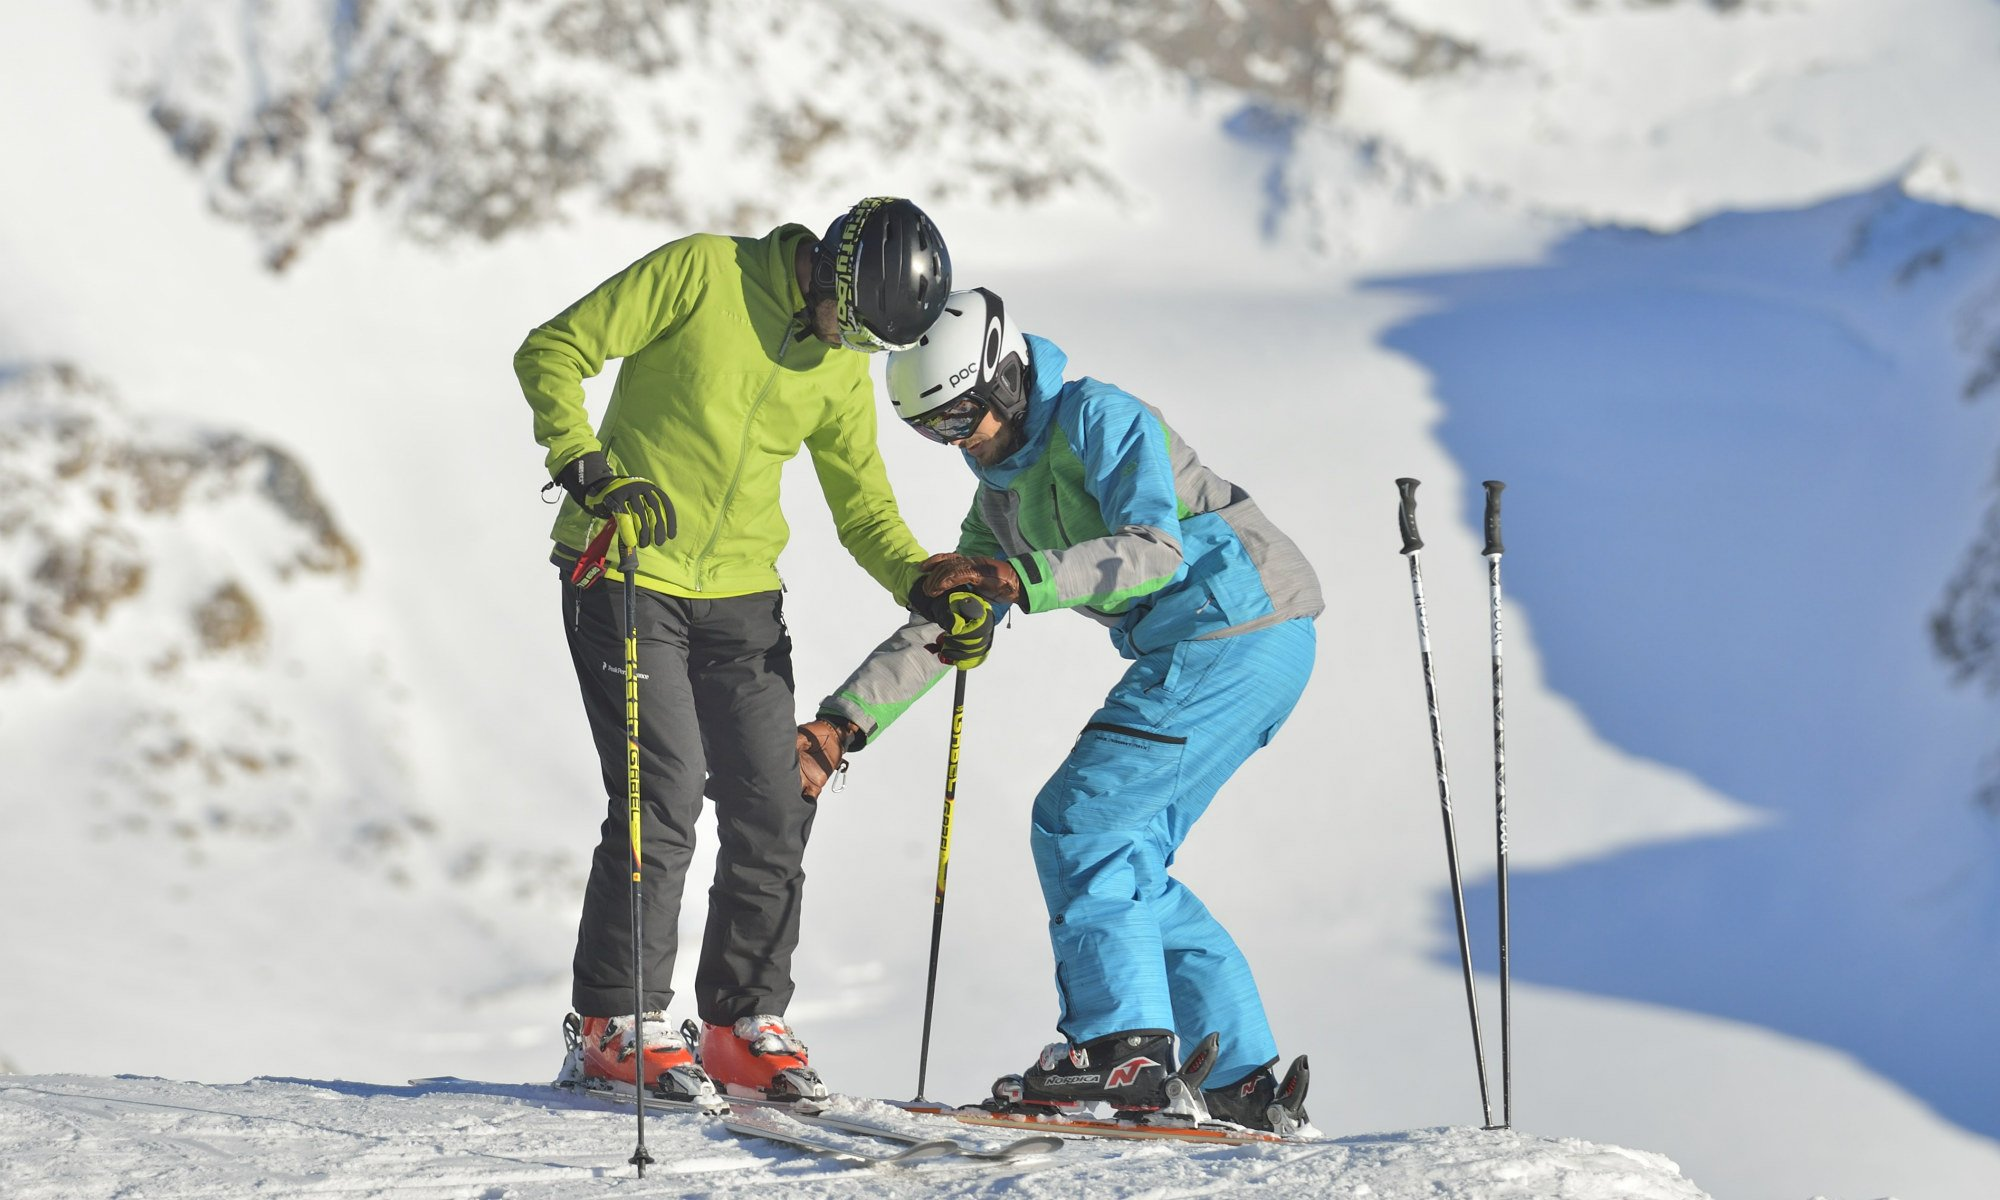 A ski instructor is showing a skier how to position the legs.